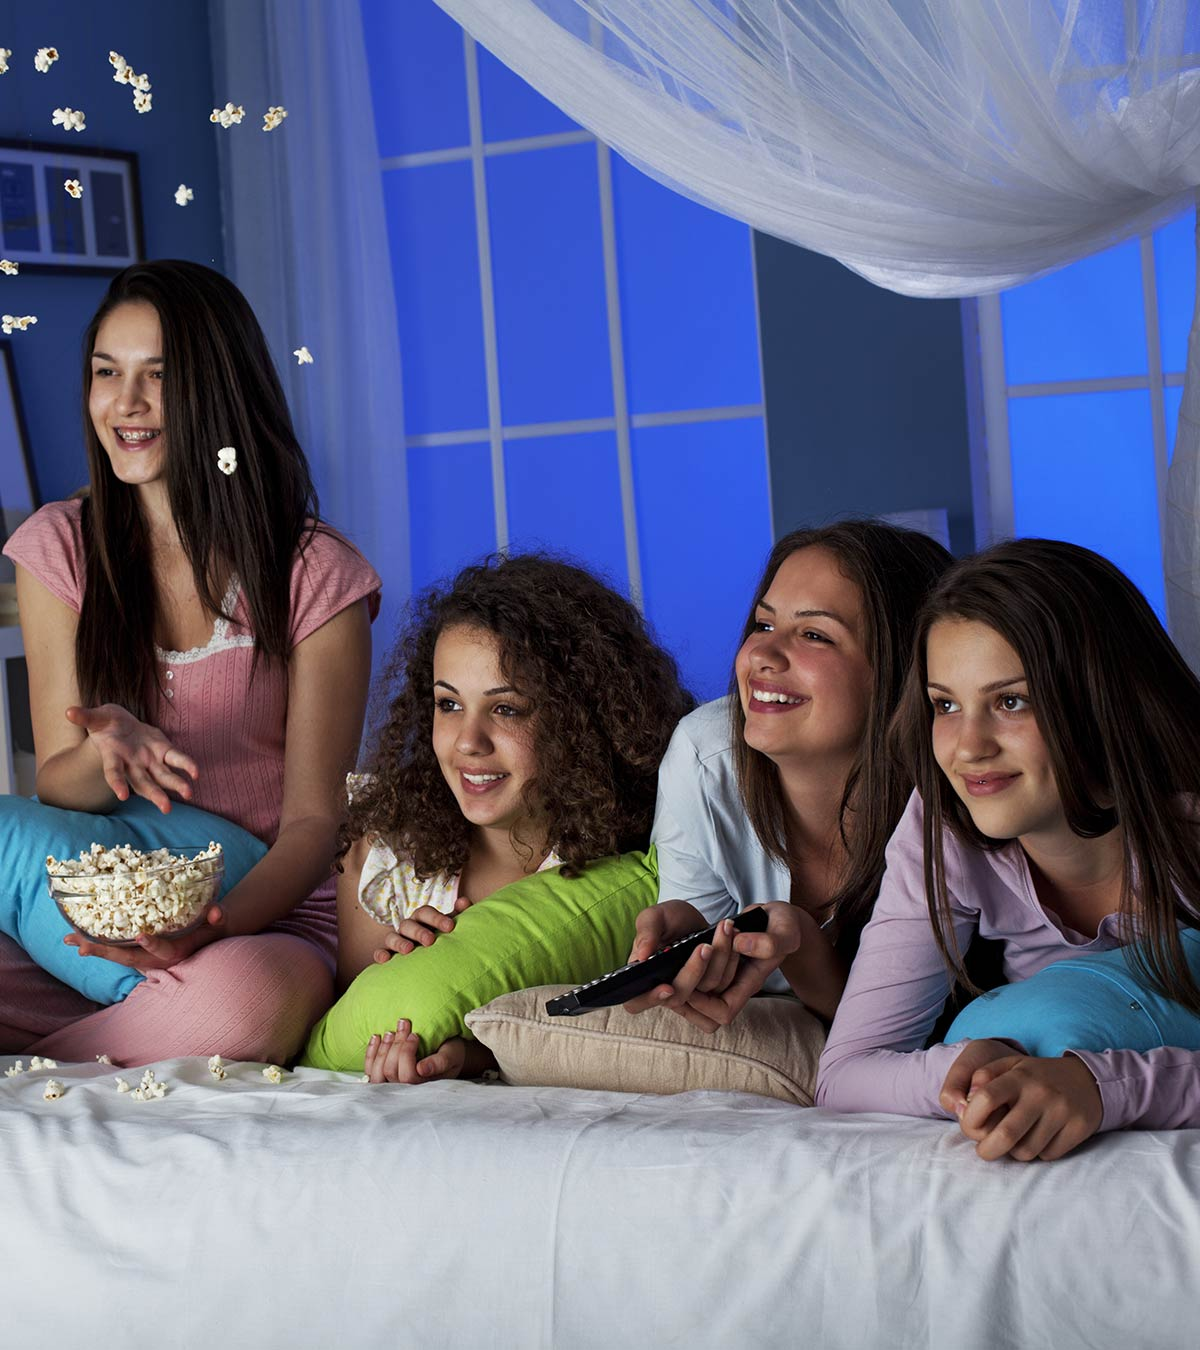 teen-from-what-to-do-on-a-sleepover-teenagers